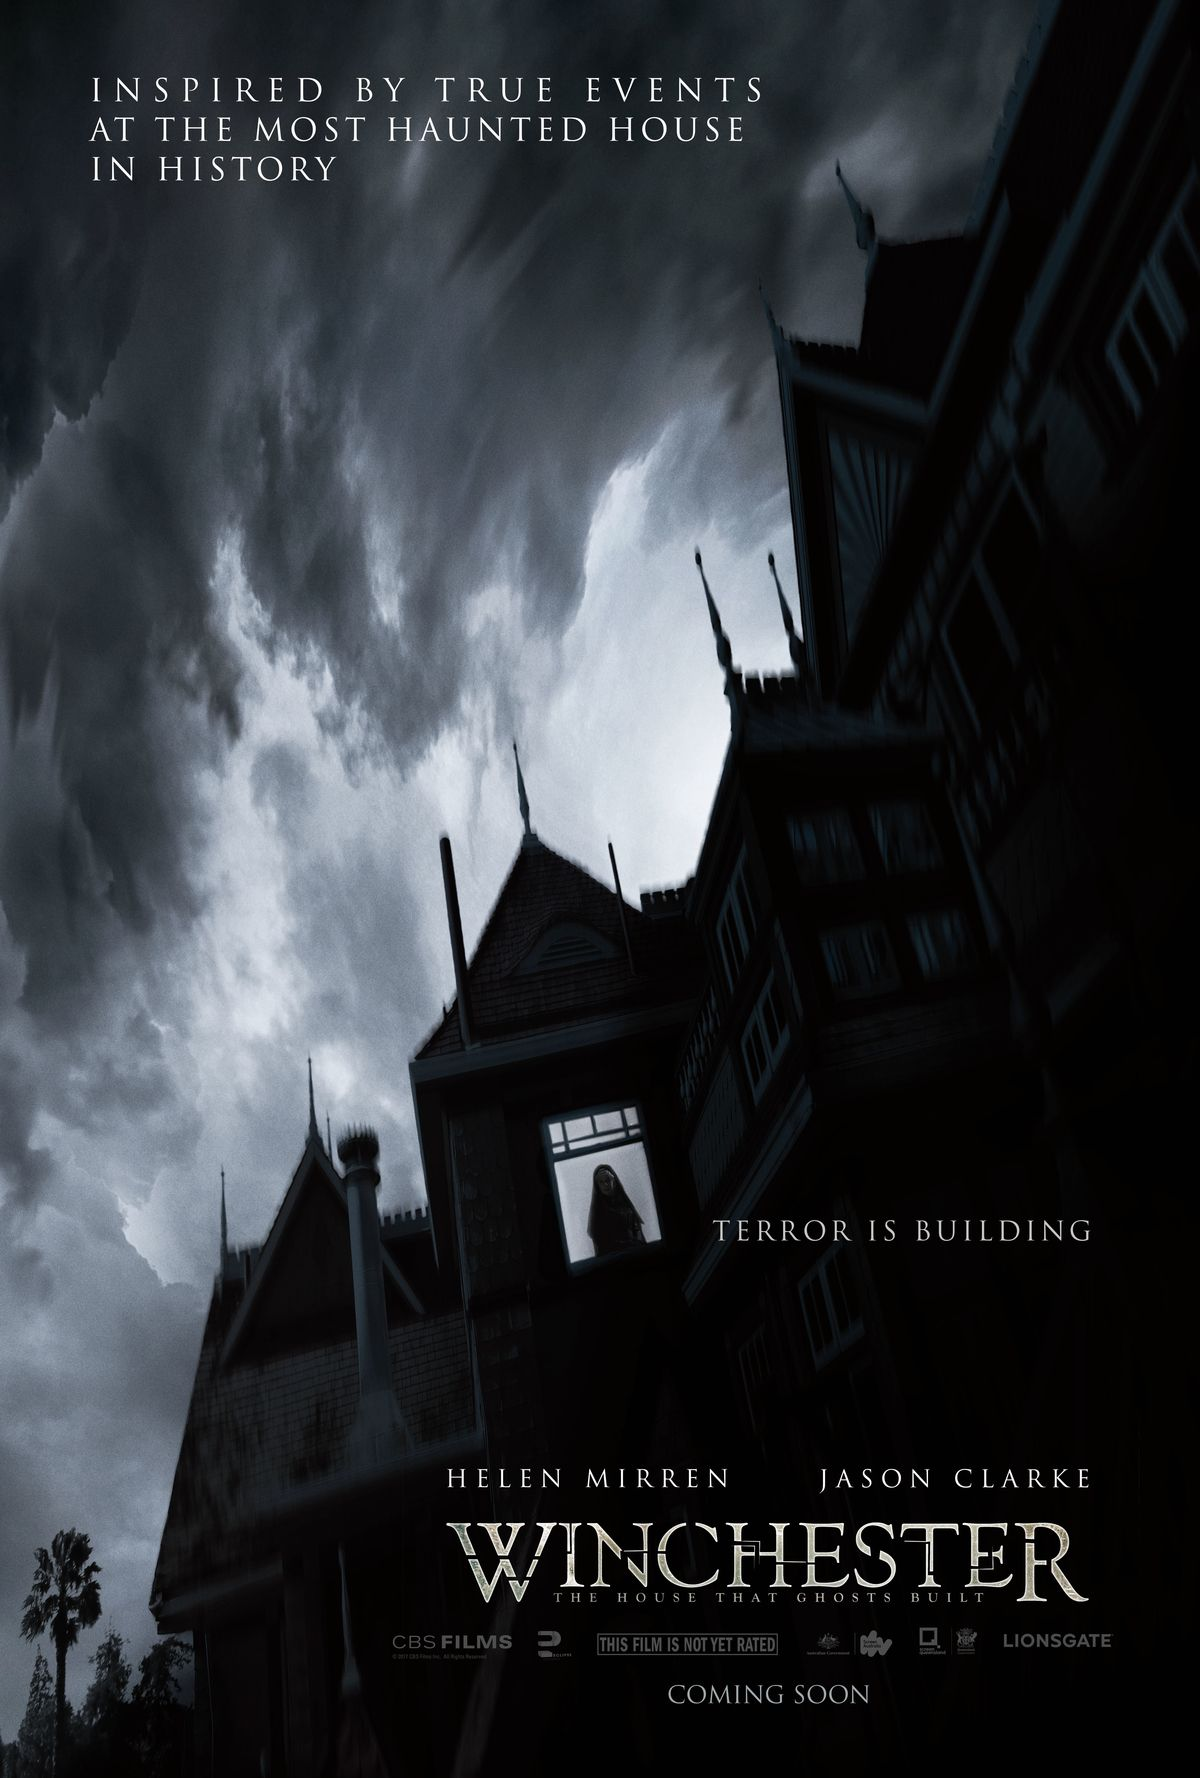 Inside The Winchester Mansion The Most Haunted House In History Full Movies Online Free Full Movies Streaming Movies